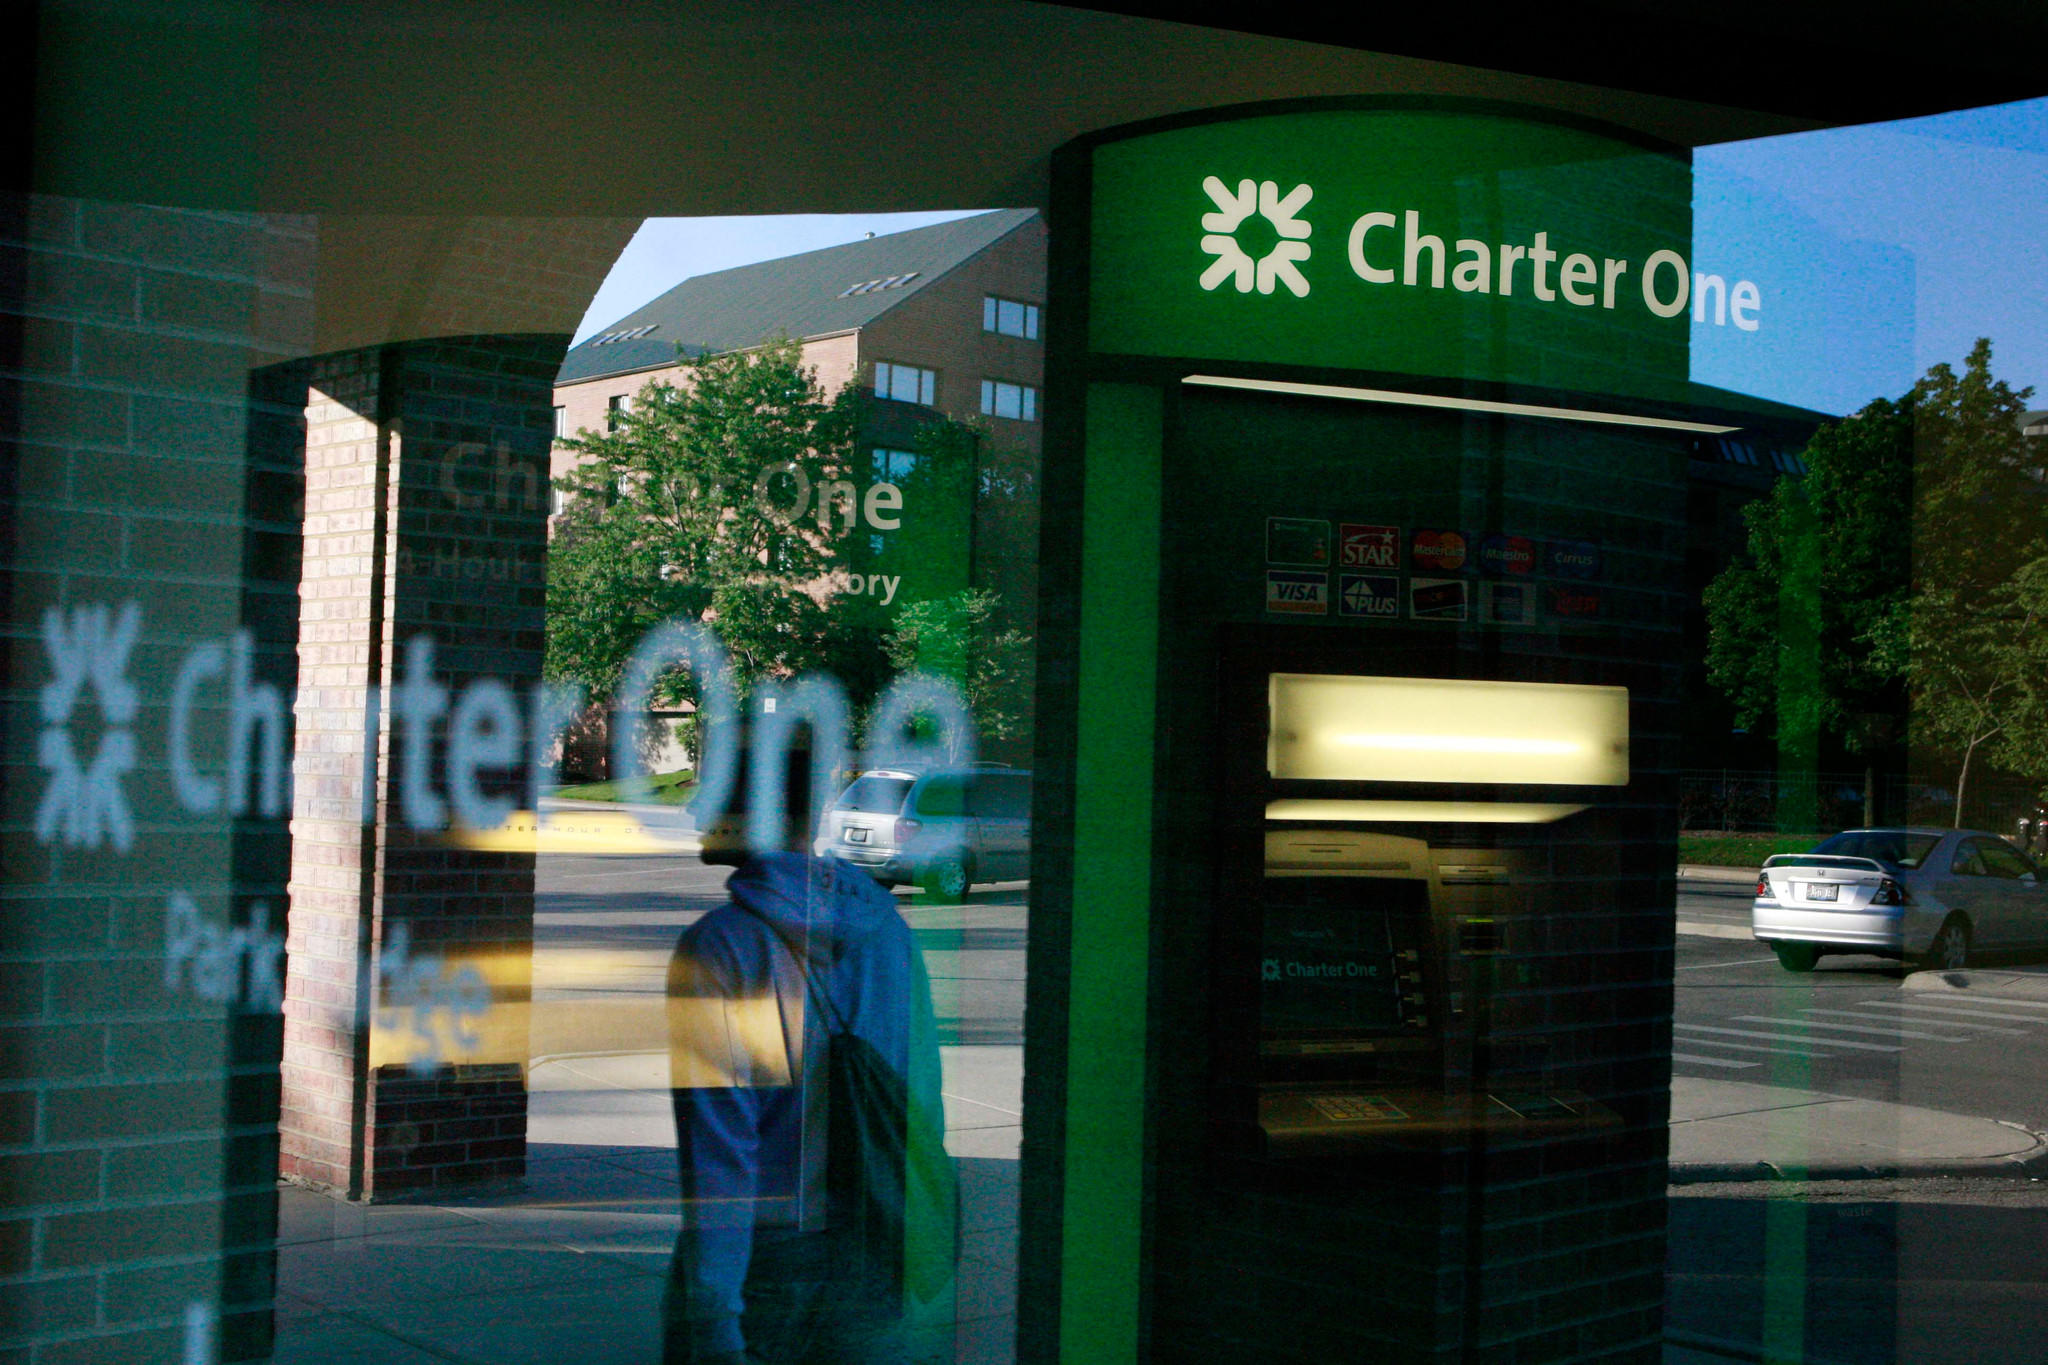 A woman is reflected in the window of the Charter One Bank in Park Ridge.